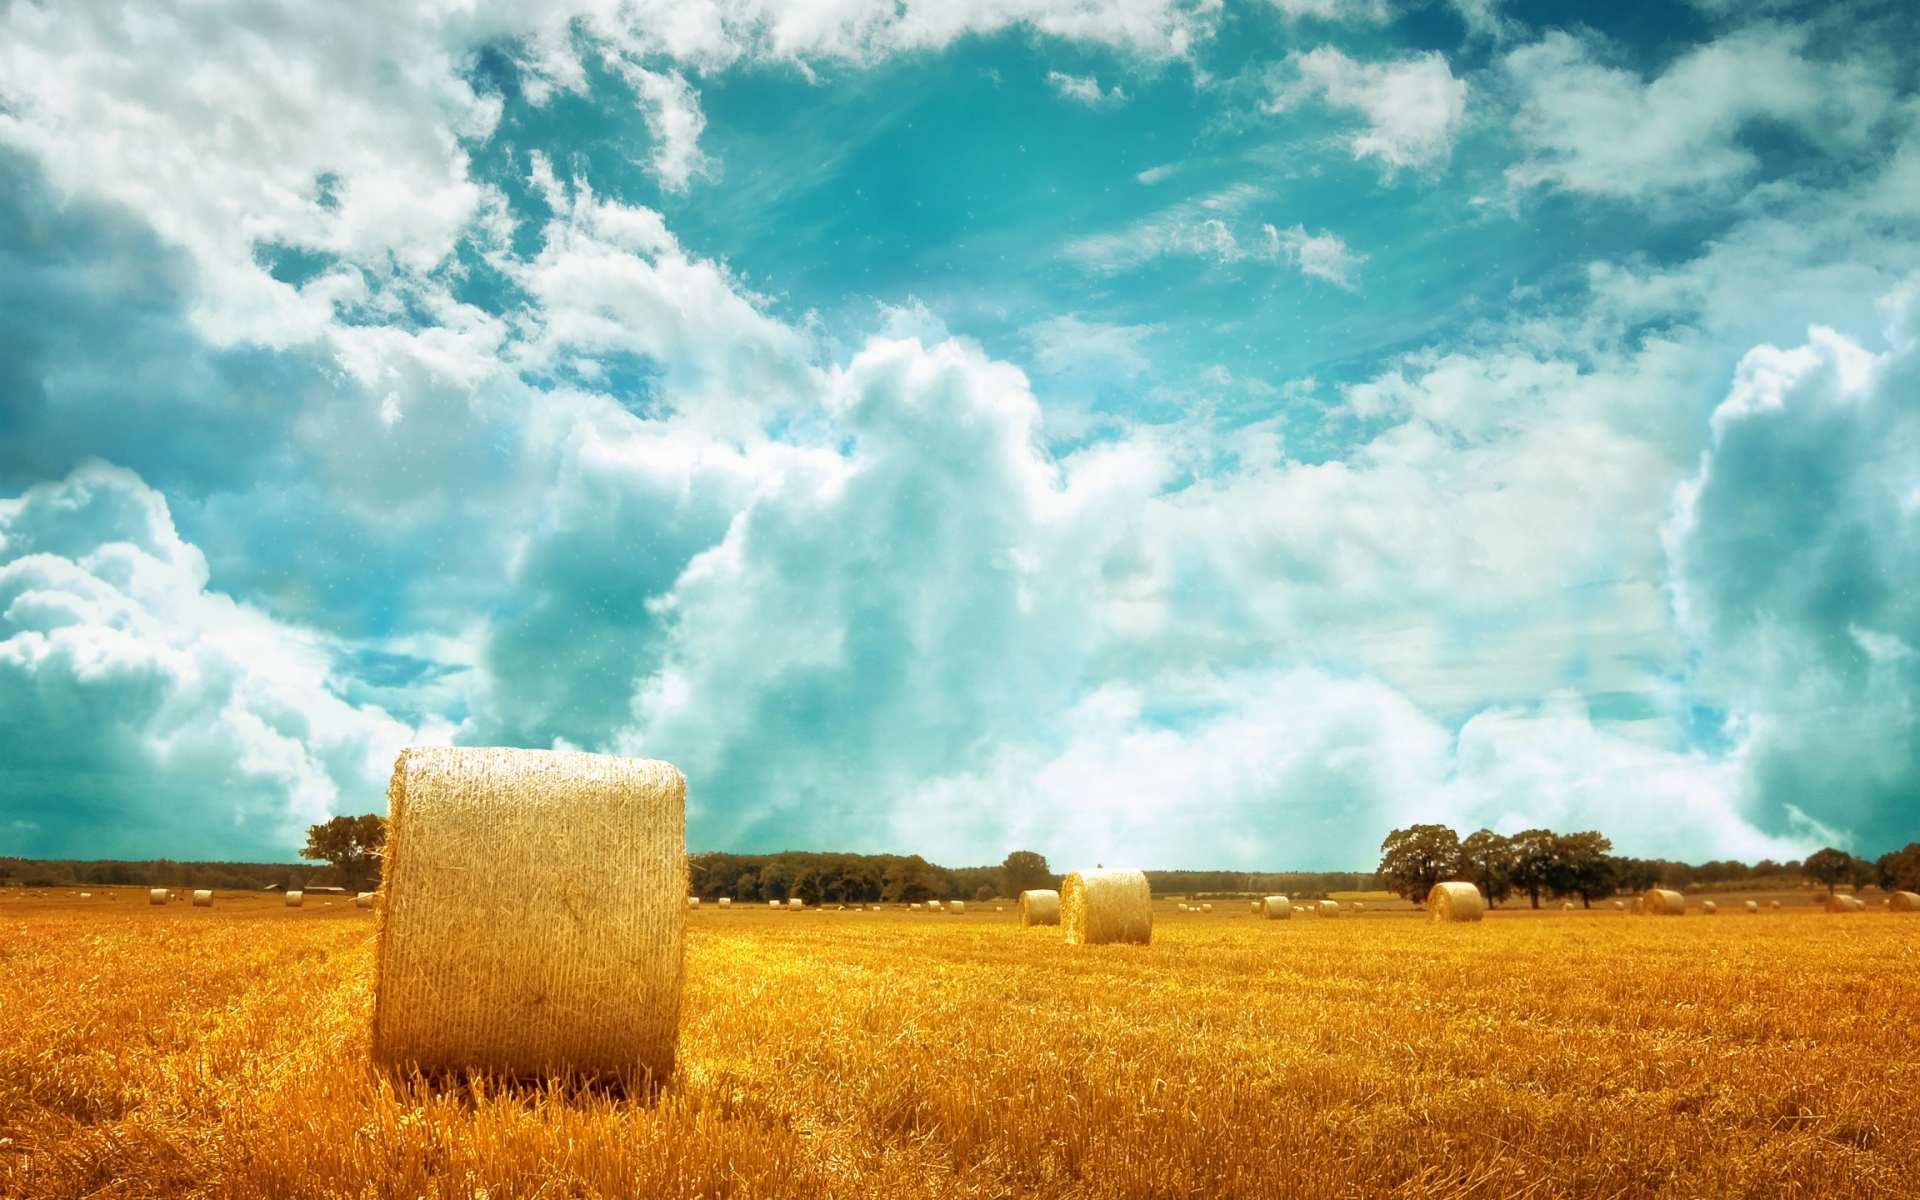 Nice Wallpaper For Iphone 5 Sky Clouds Hay Bales Amp Field Wallpapers Sky Clouds Hay